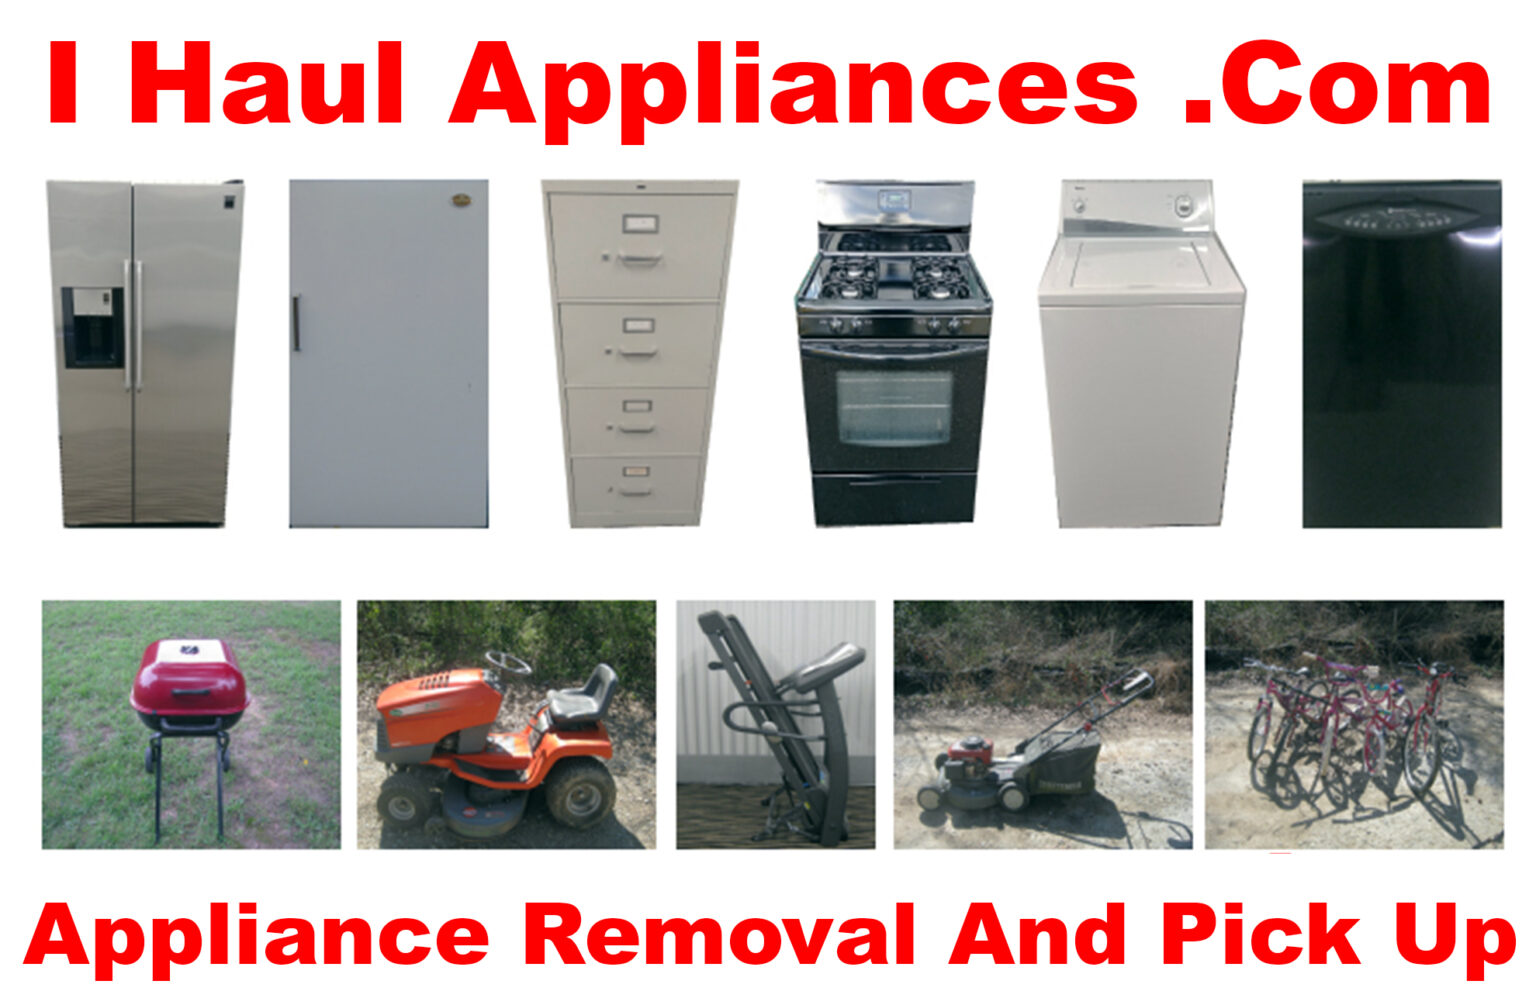 appliance removal junk removal haul away service